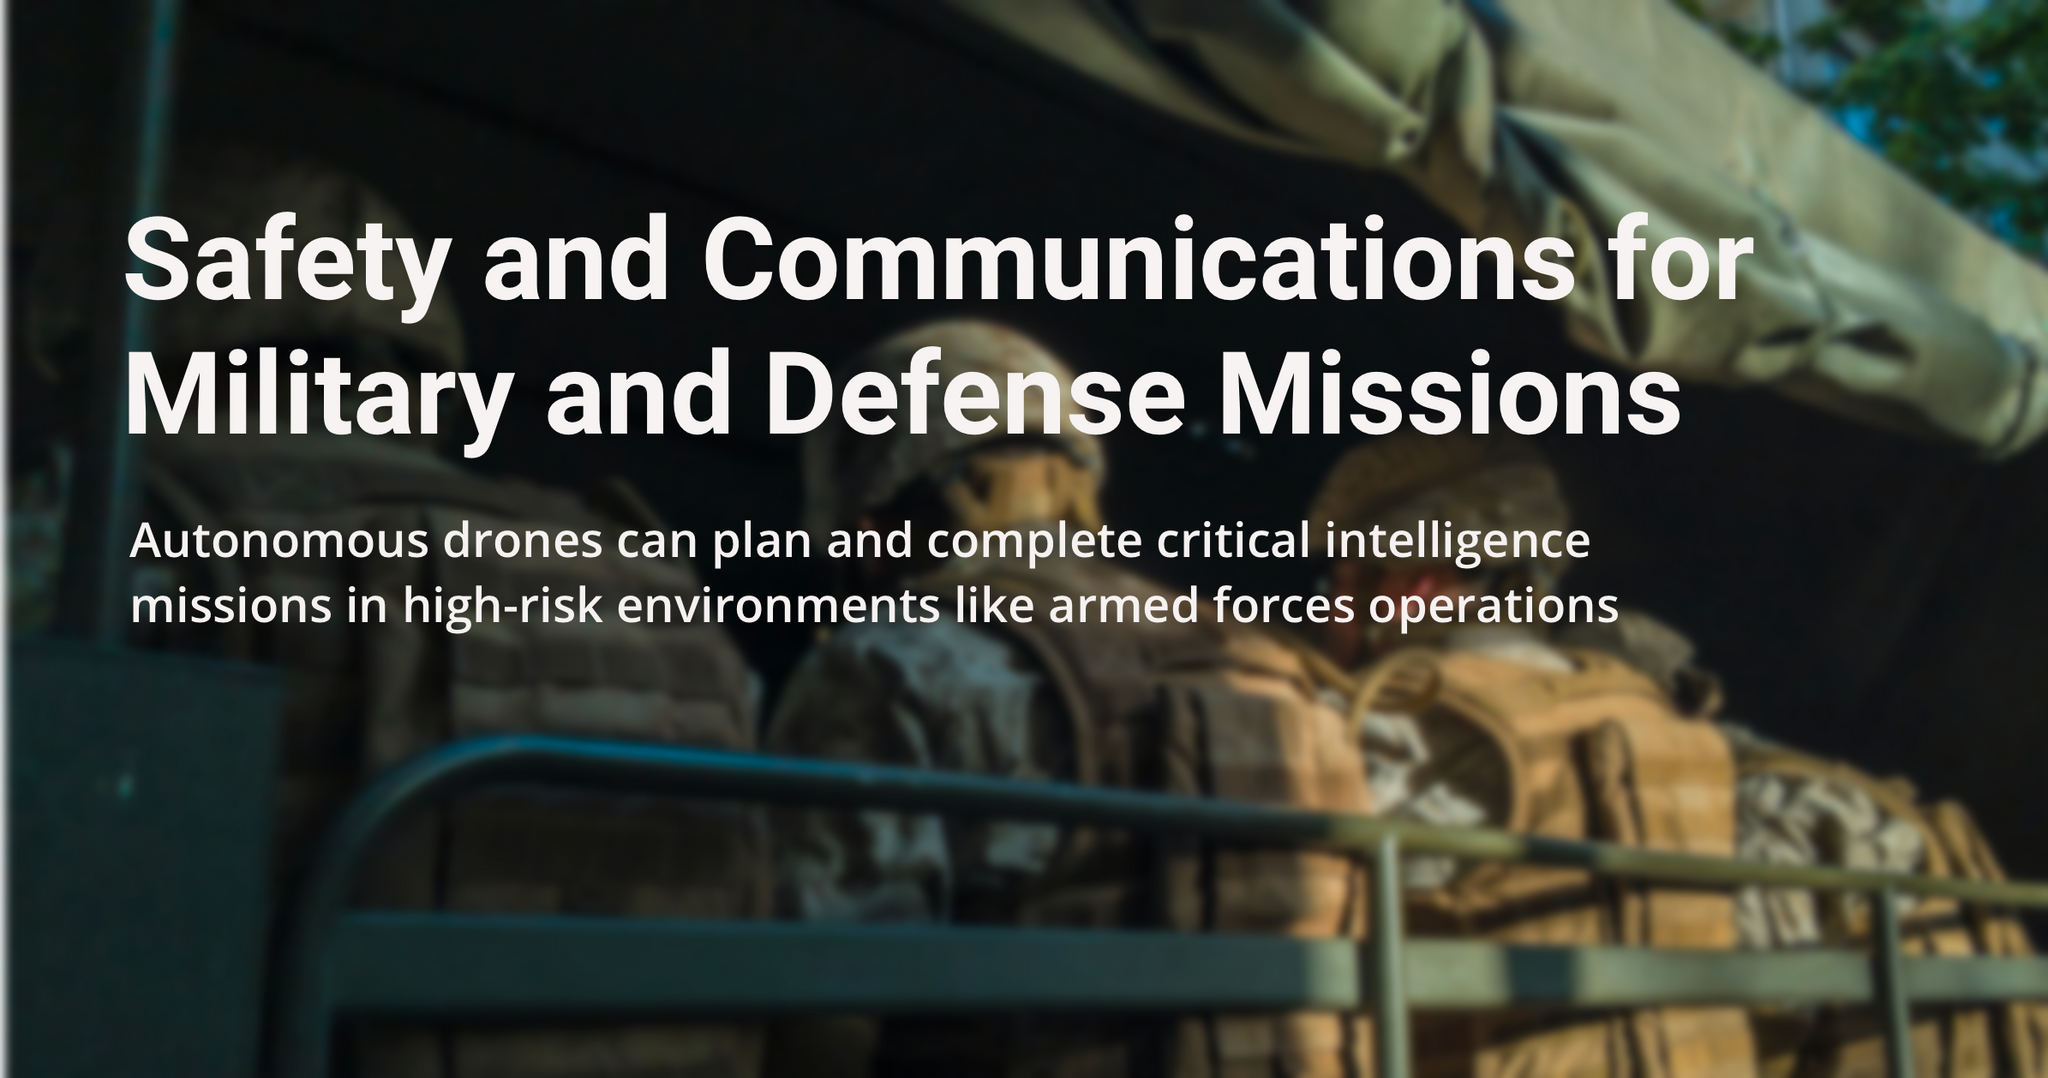 autonomous drone use case- safety and communications for military and defense missions. autonomous drones can plan and complete critical intelligence missions in high-risk environments like armed forces operations